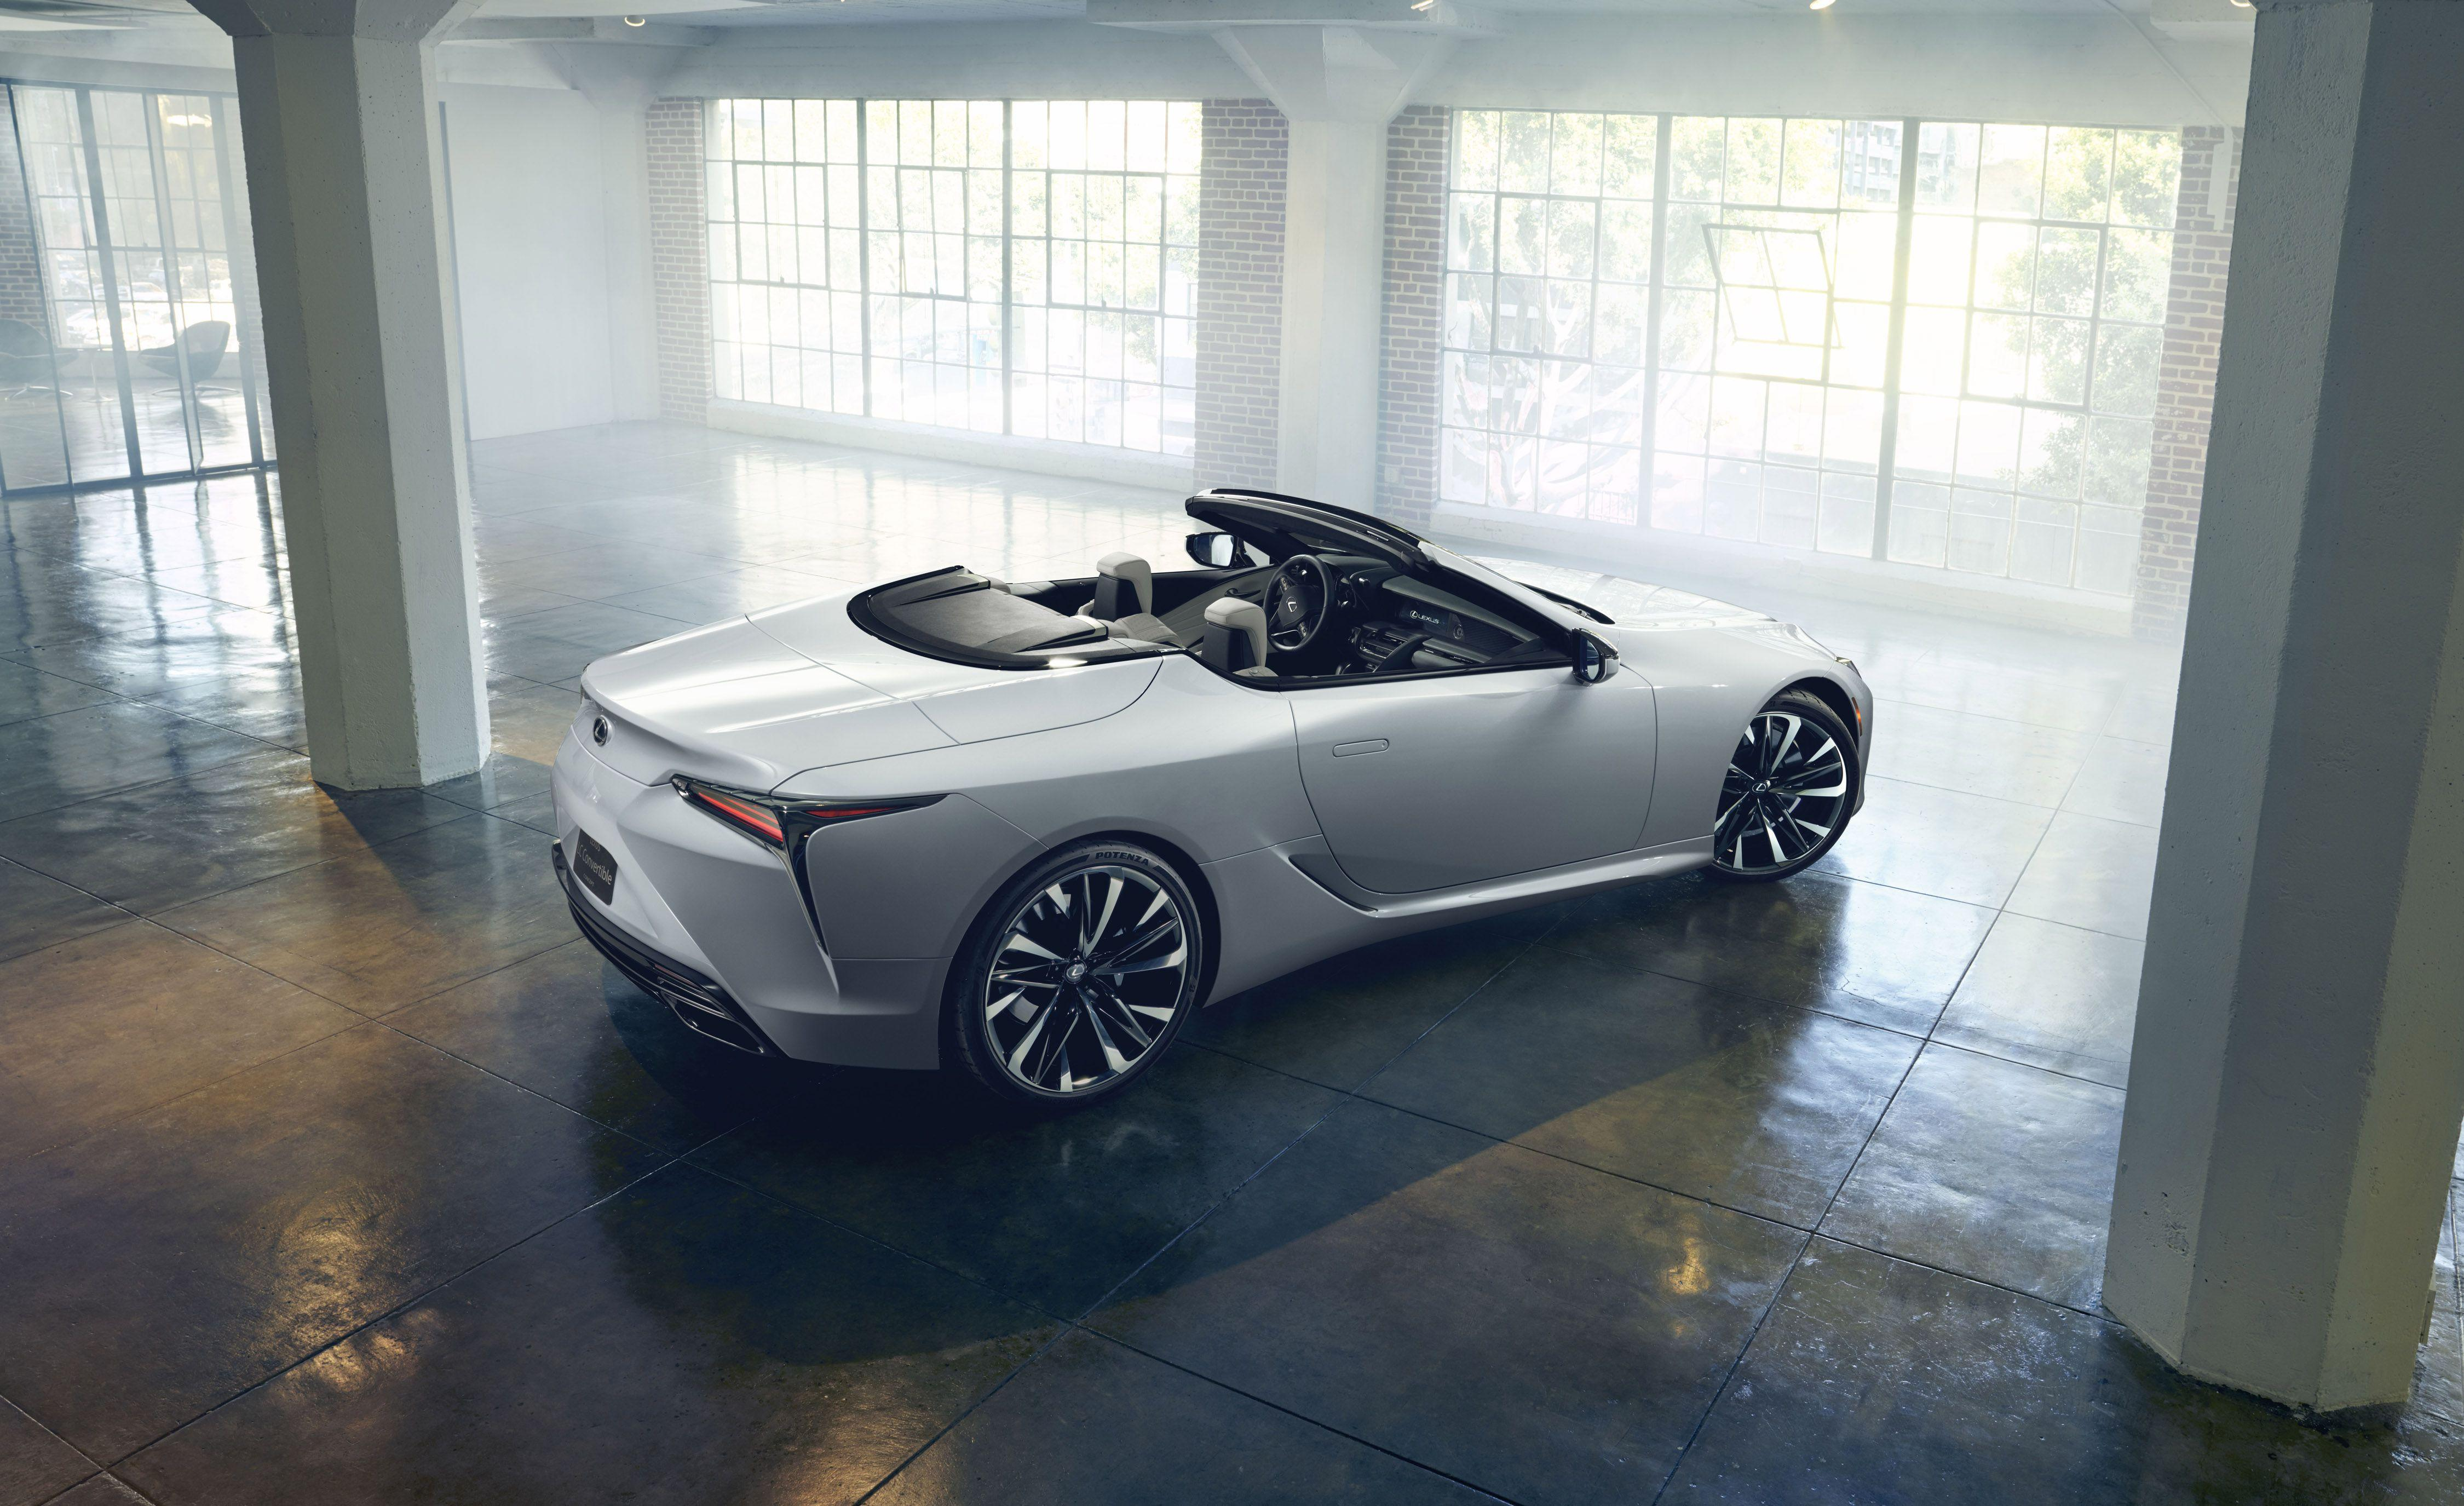 """<p>Lexus designer Tadao Mori says that """"A production version of this concept would be exhilarating in many different ways."""" Would be? This LC convertible concept <em>is</em>exhilarating<em>. </em>We'd like to apply that same present tense to its status as a production vehicle. So far, it's only a show car, and it is making its debut at the 2019 Detroit auto show.</p>"""